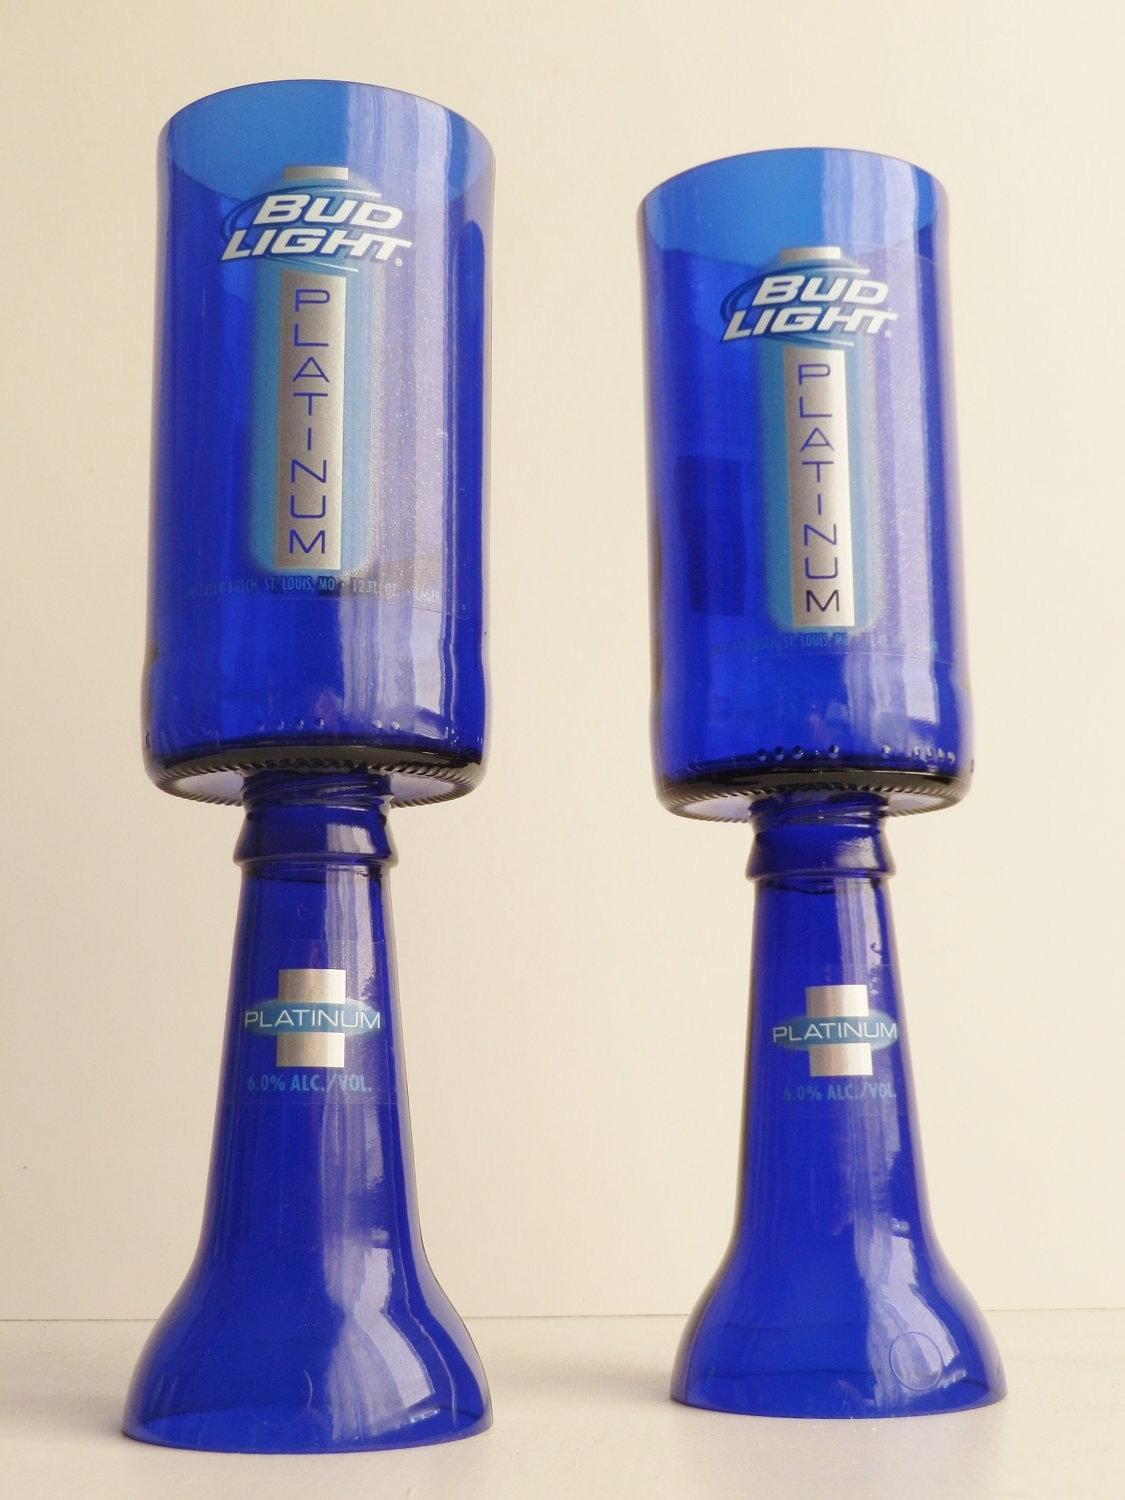 Beer Bottle Wine Glasses Blue Bud Light Platinum Goblets